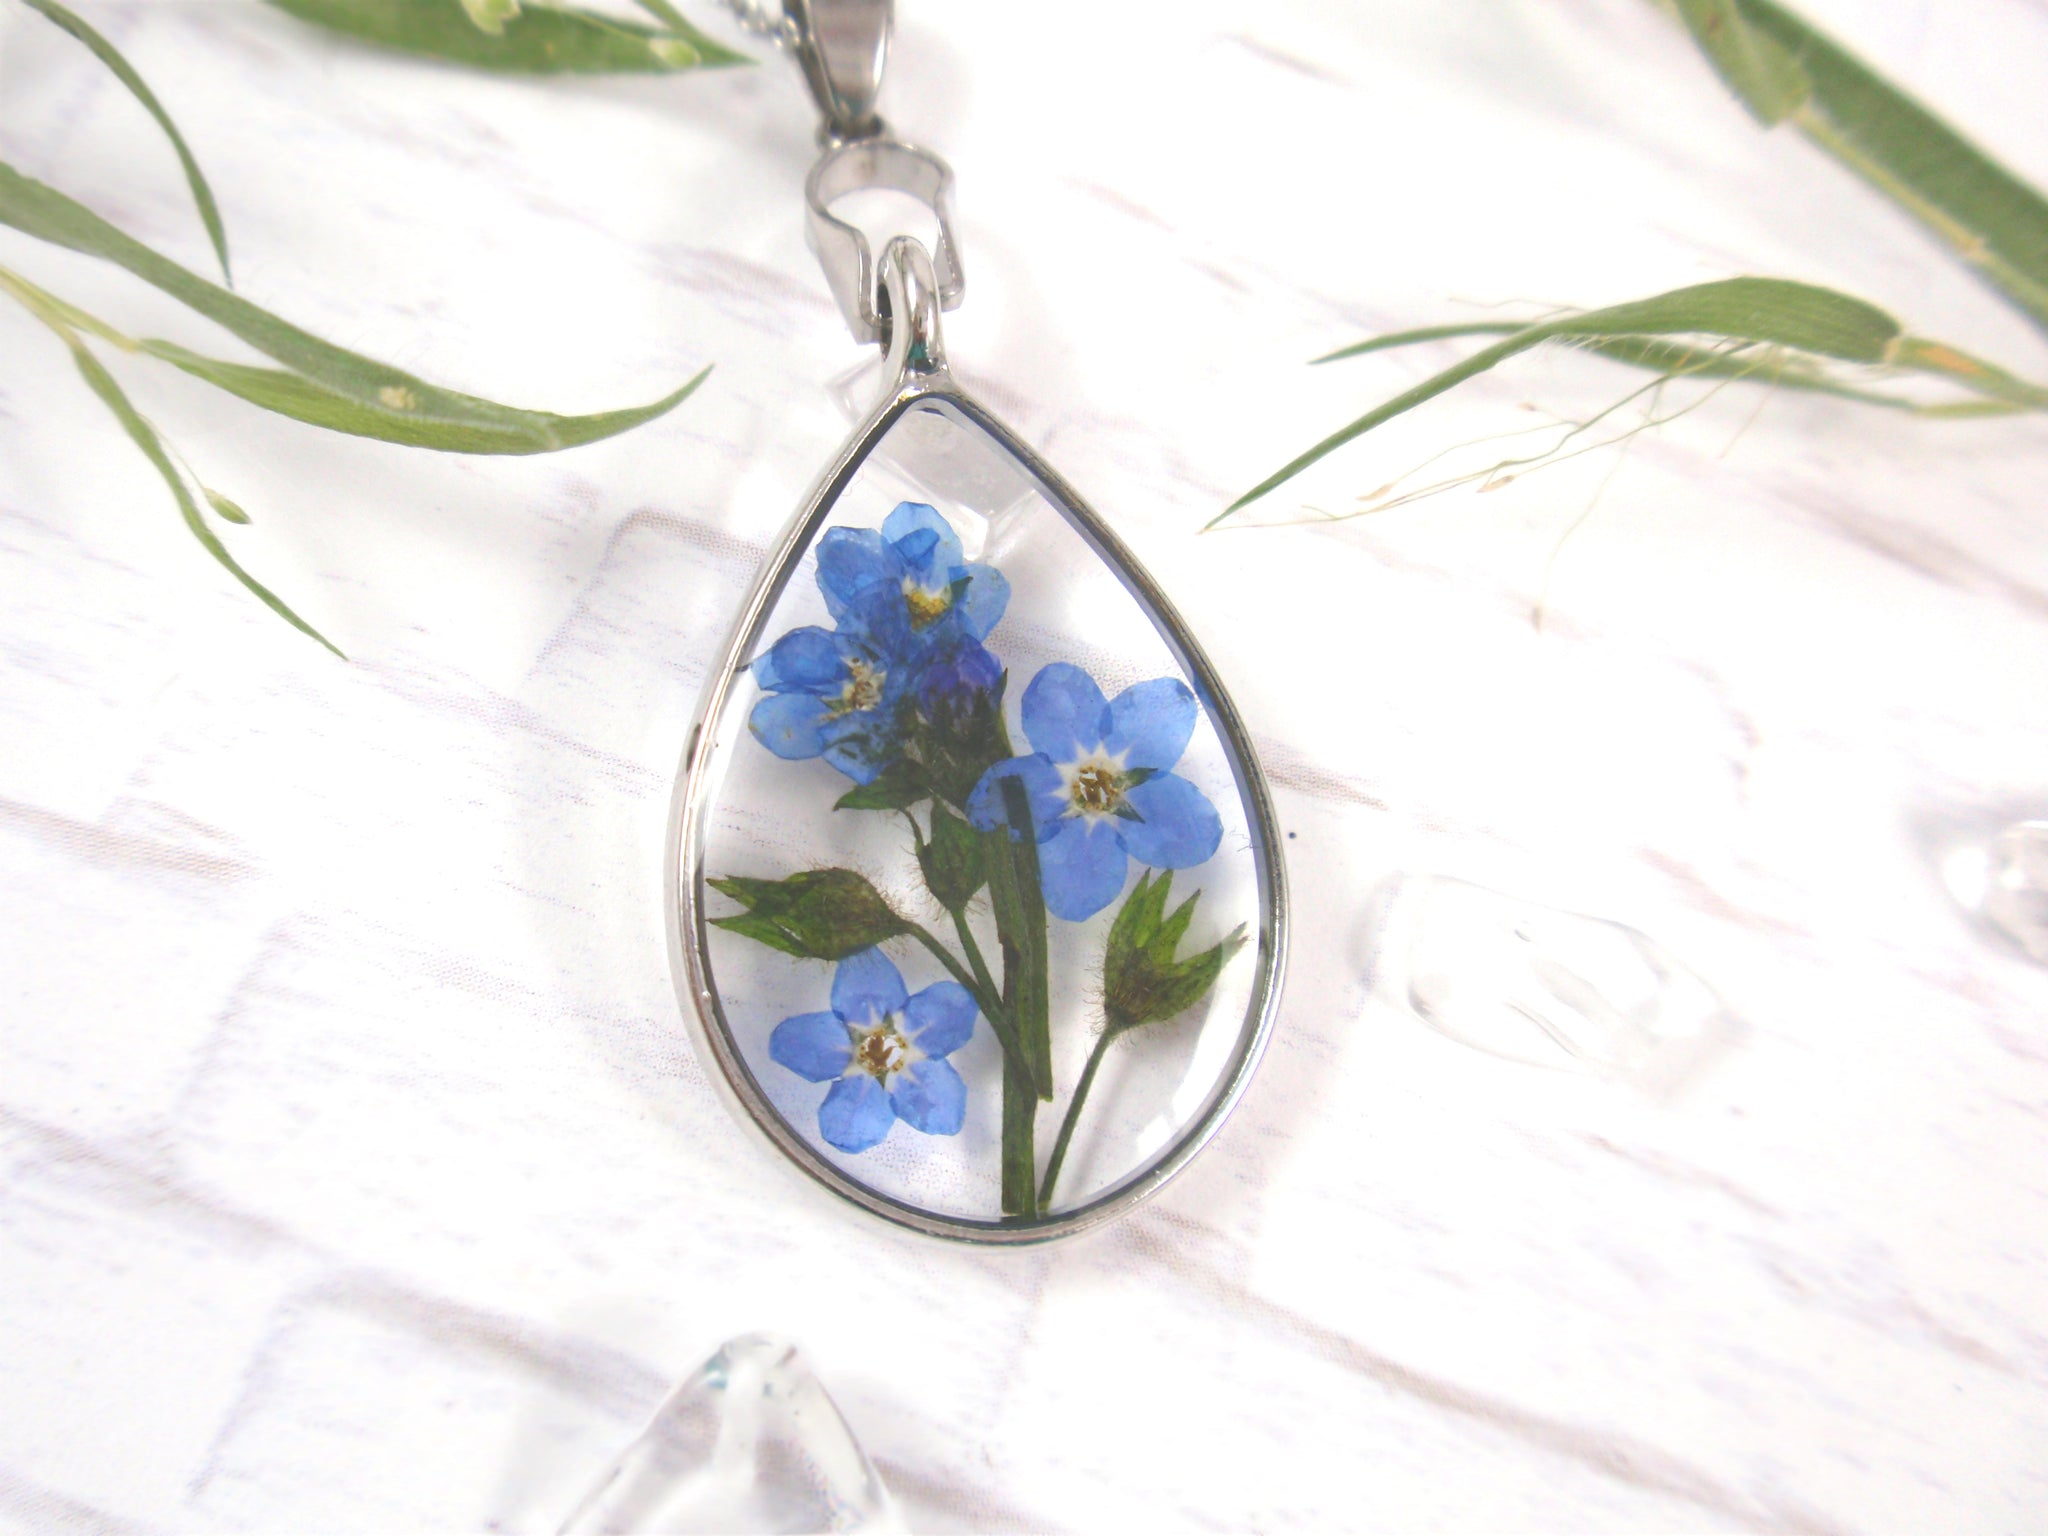 handmade pressed flower jewelry